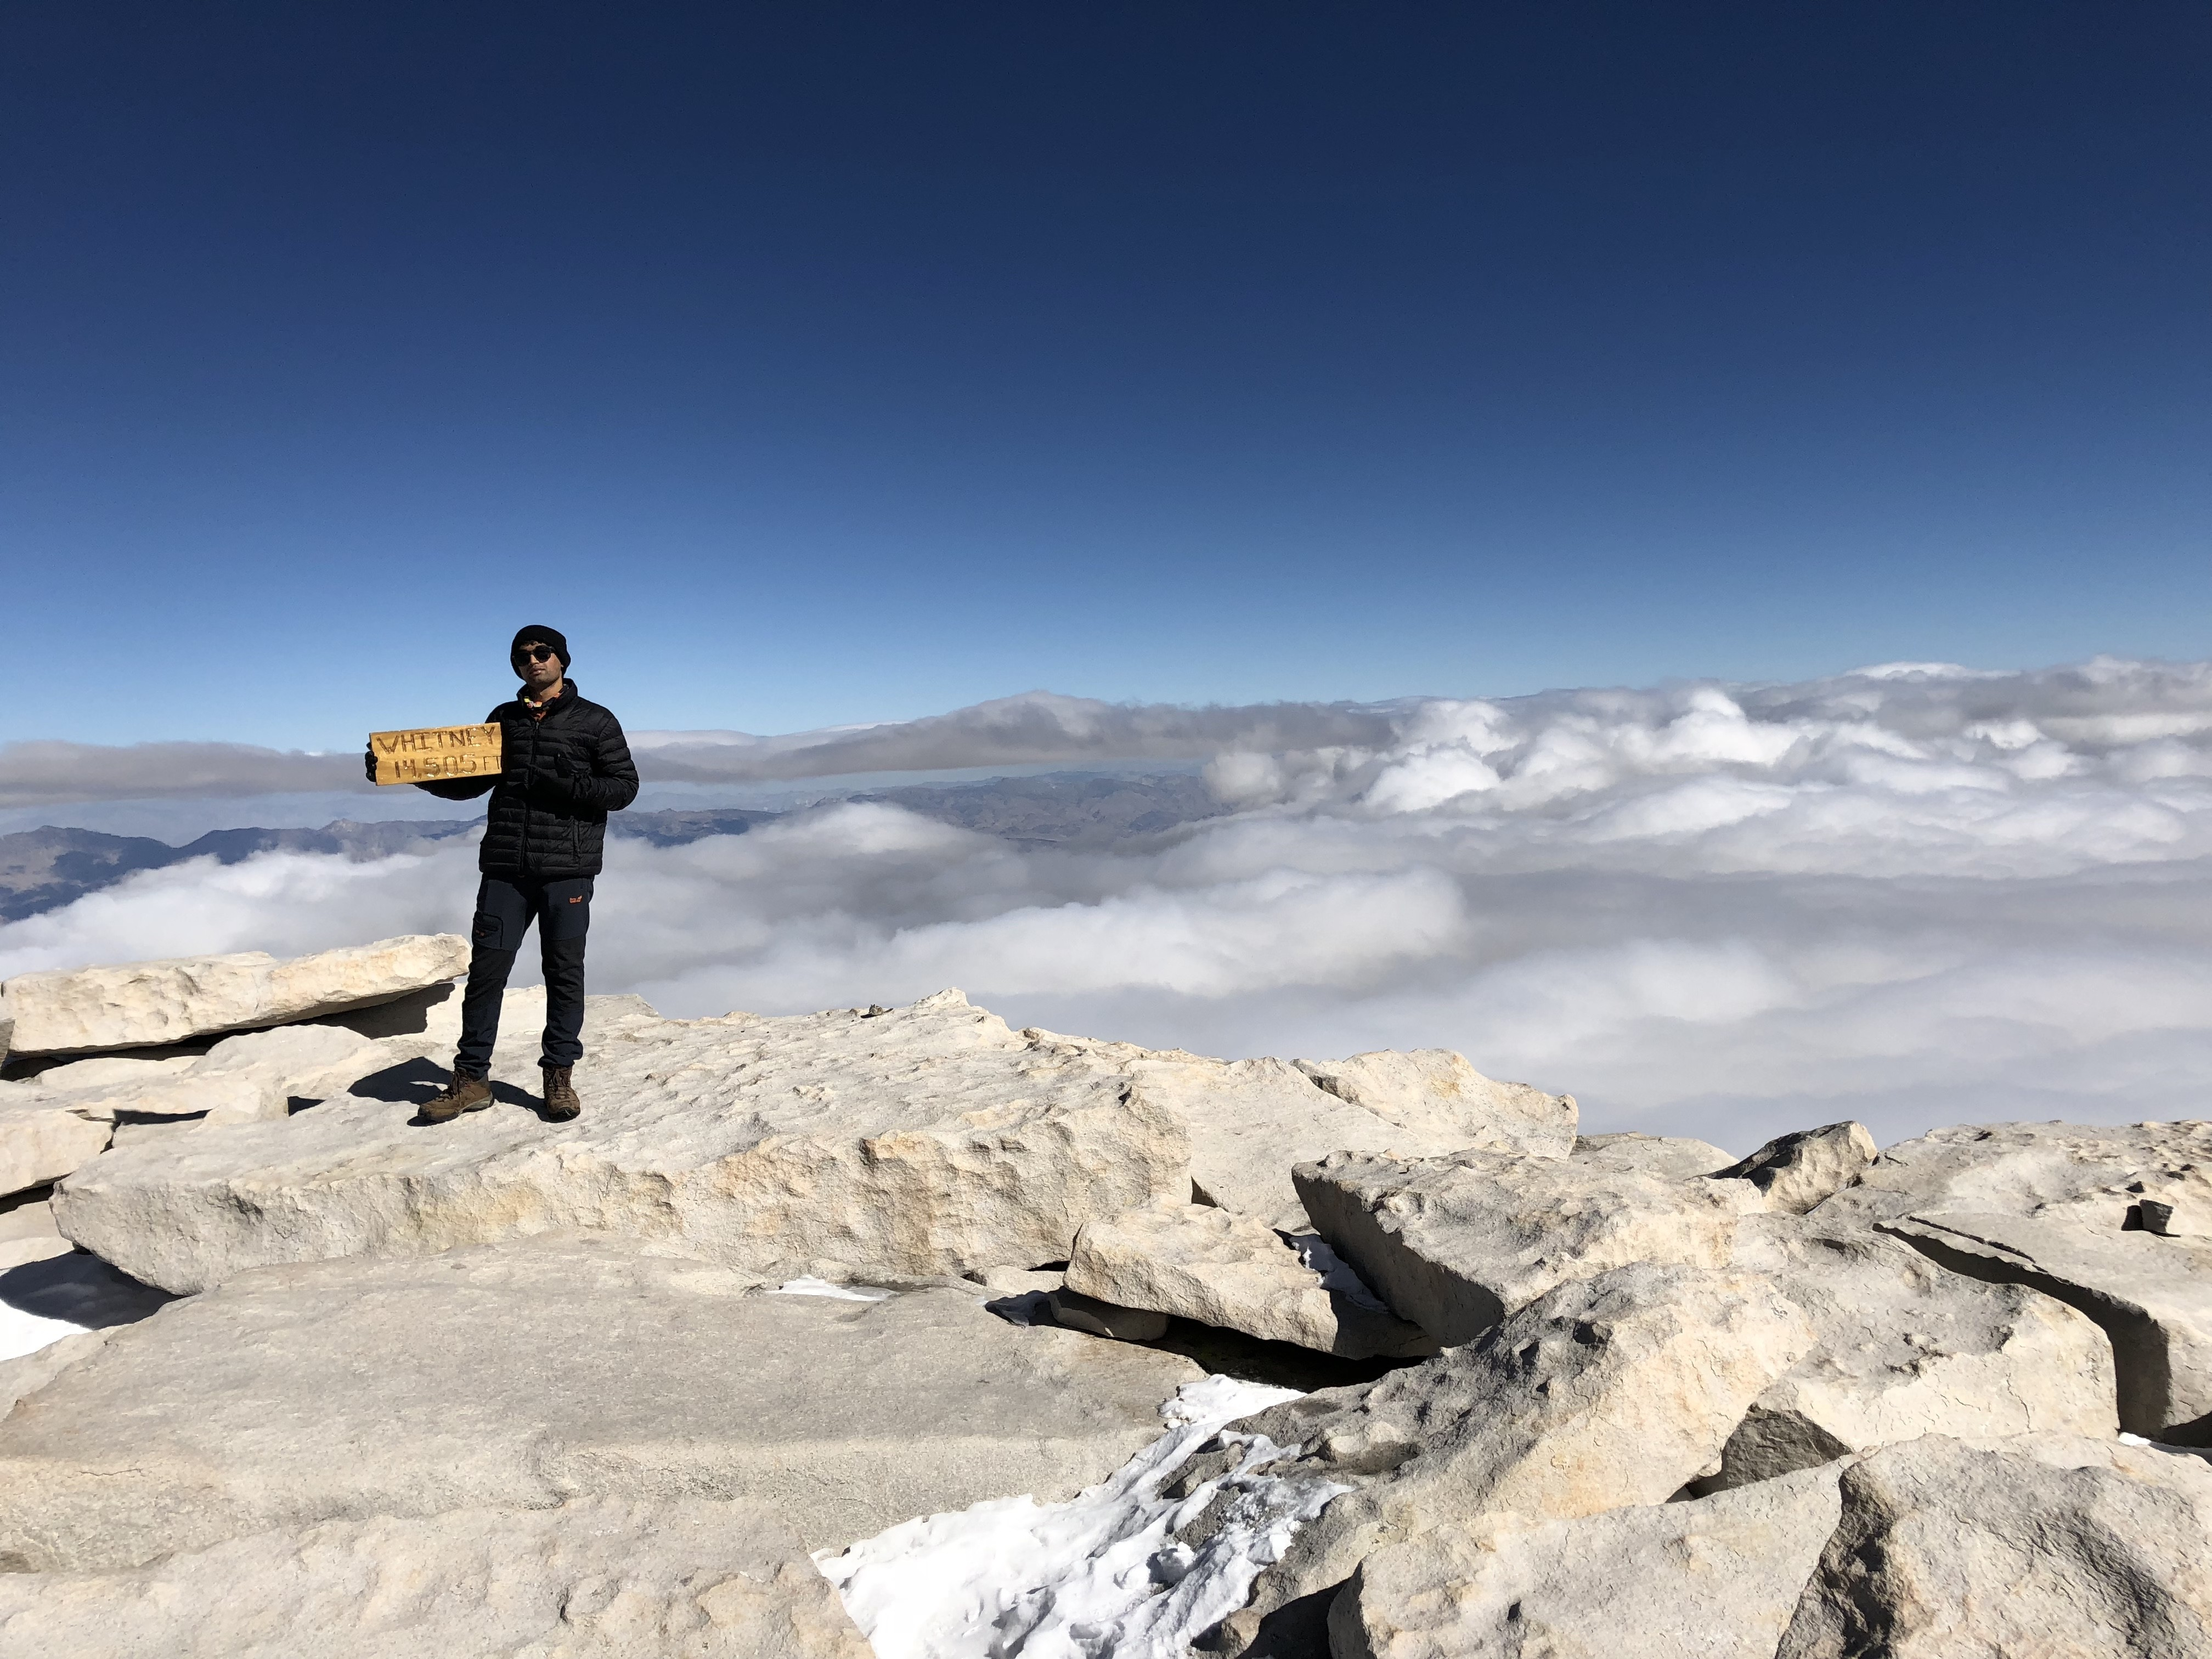 Top of the USA – Mount Whitney